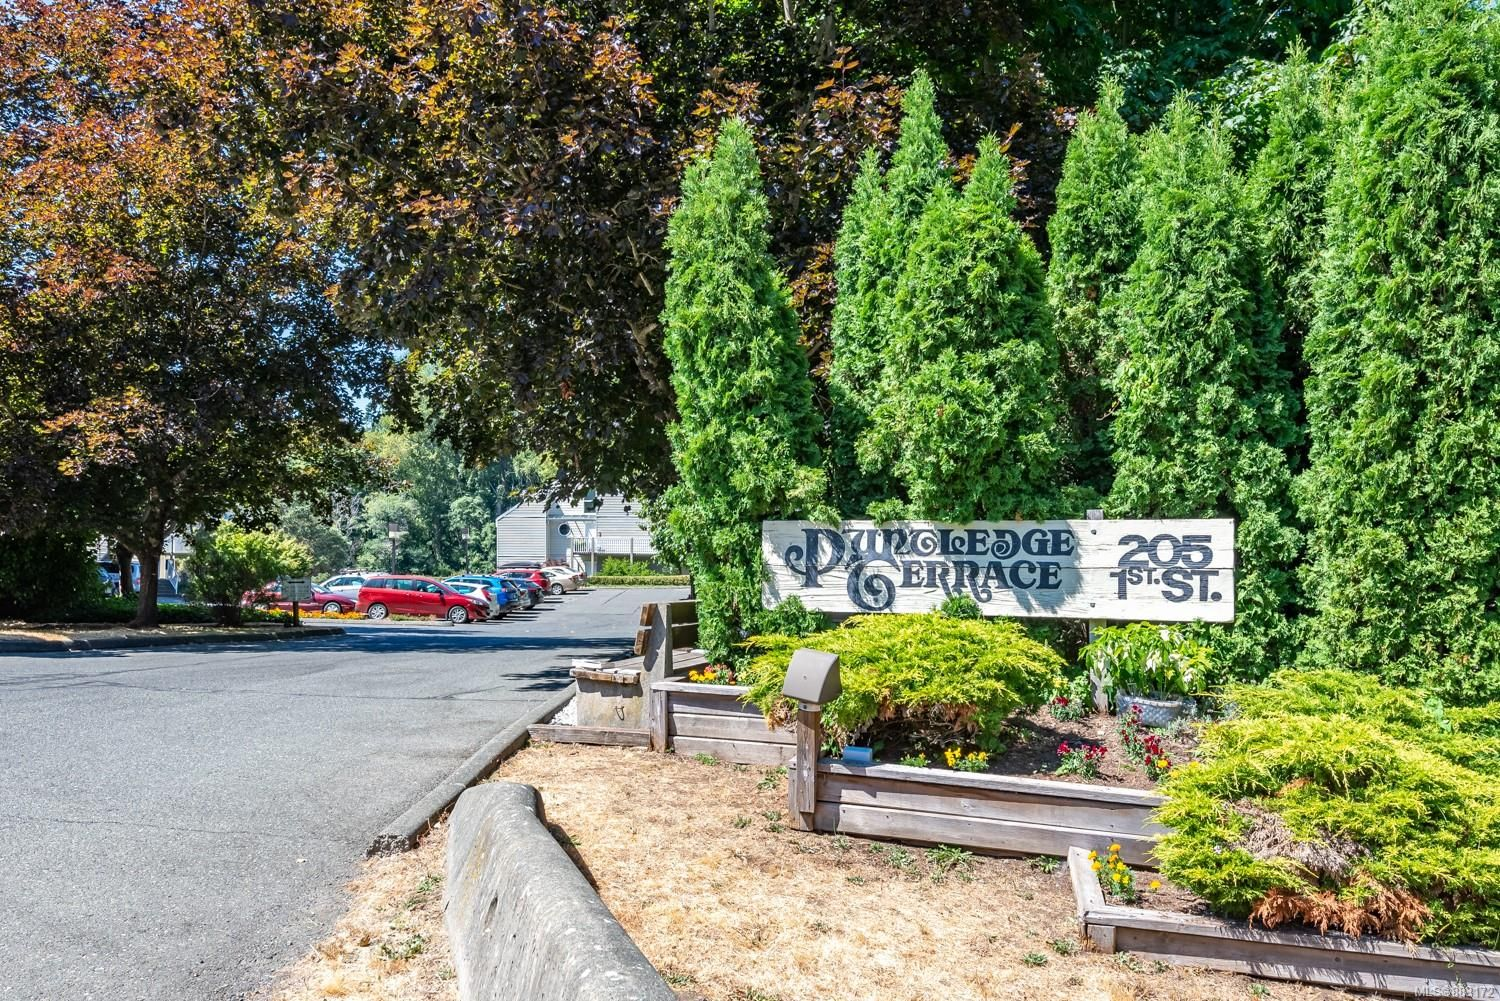 Photo 28: Photos: 303 205 1st St in : CV Courtenay City Row/Townhouse for sale (Comox Valley)  : MLS®# 883172